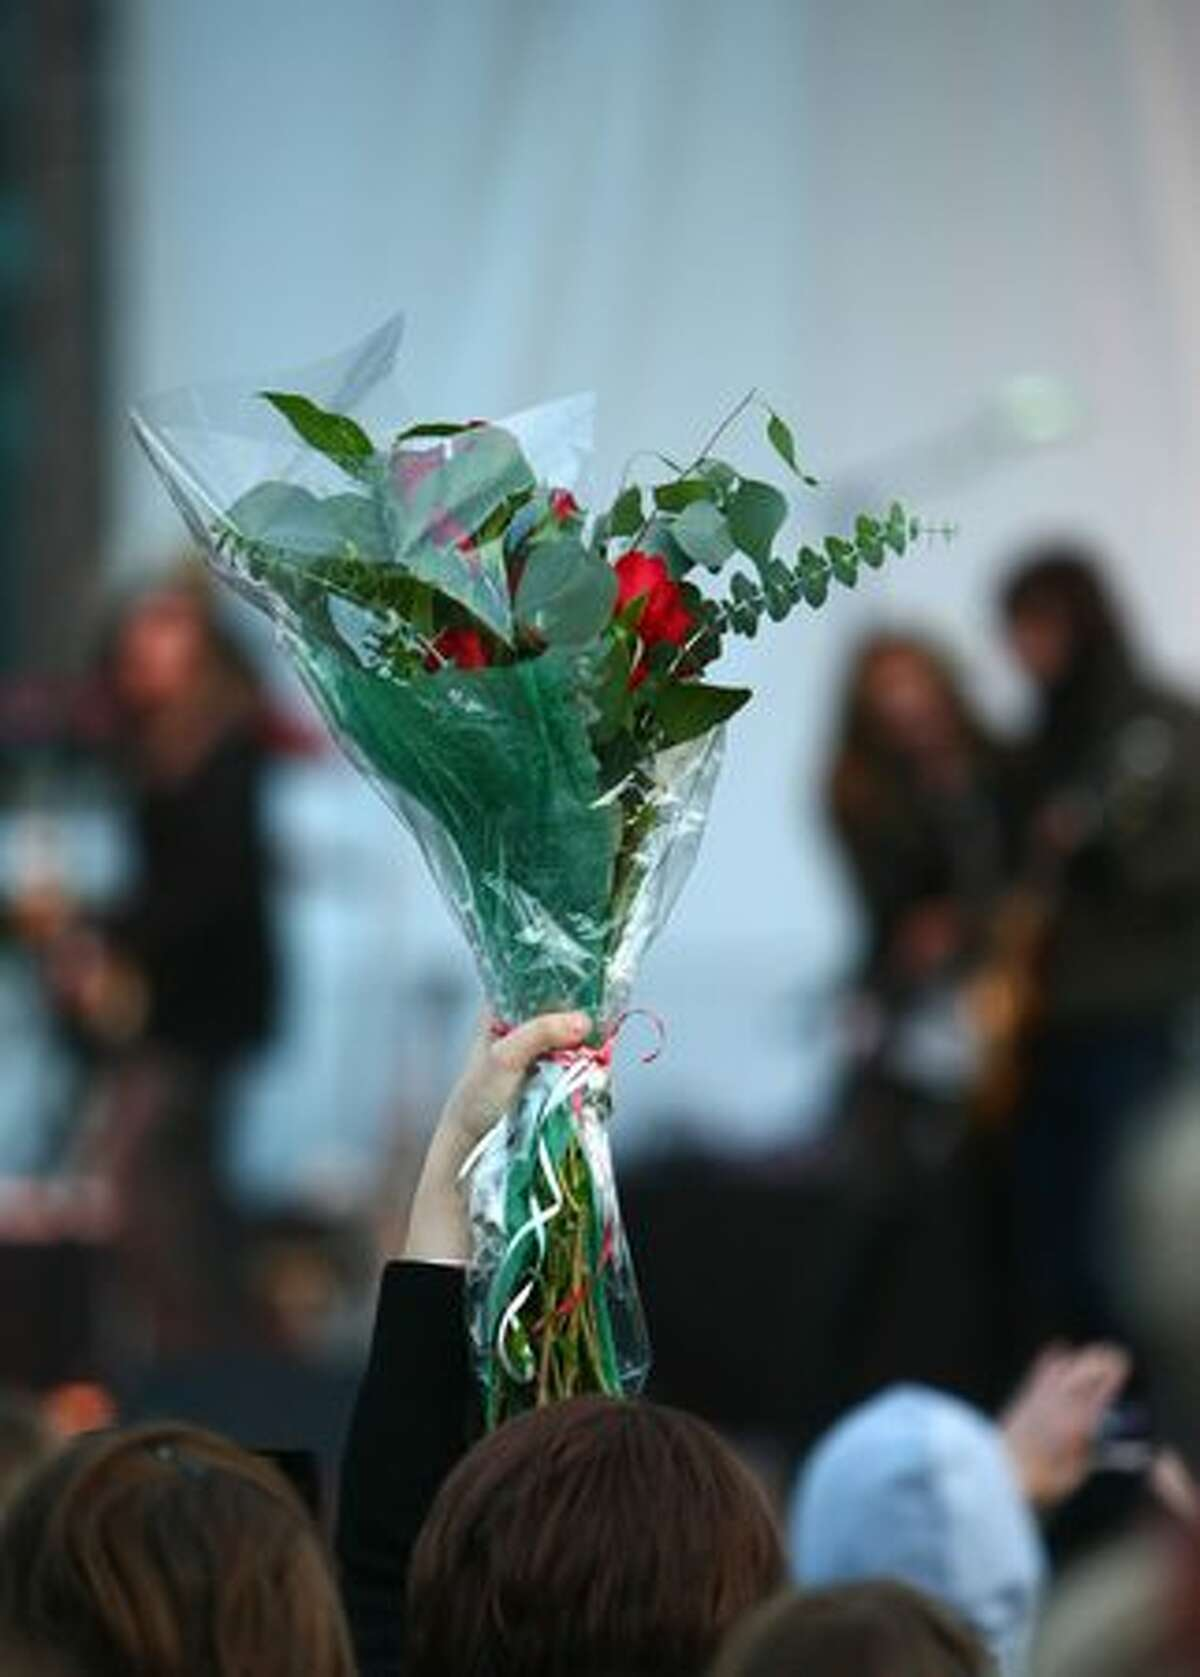 A fan raises a bouquet of roses as pop singer and actress Miley Cyrus performs in front of thousands of fans in downtown Bellevue.